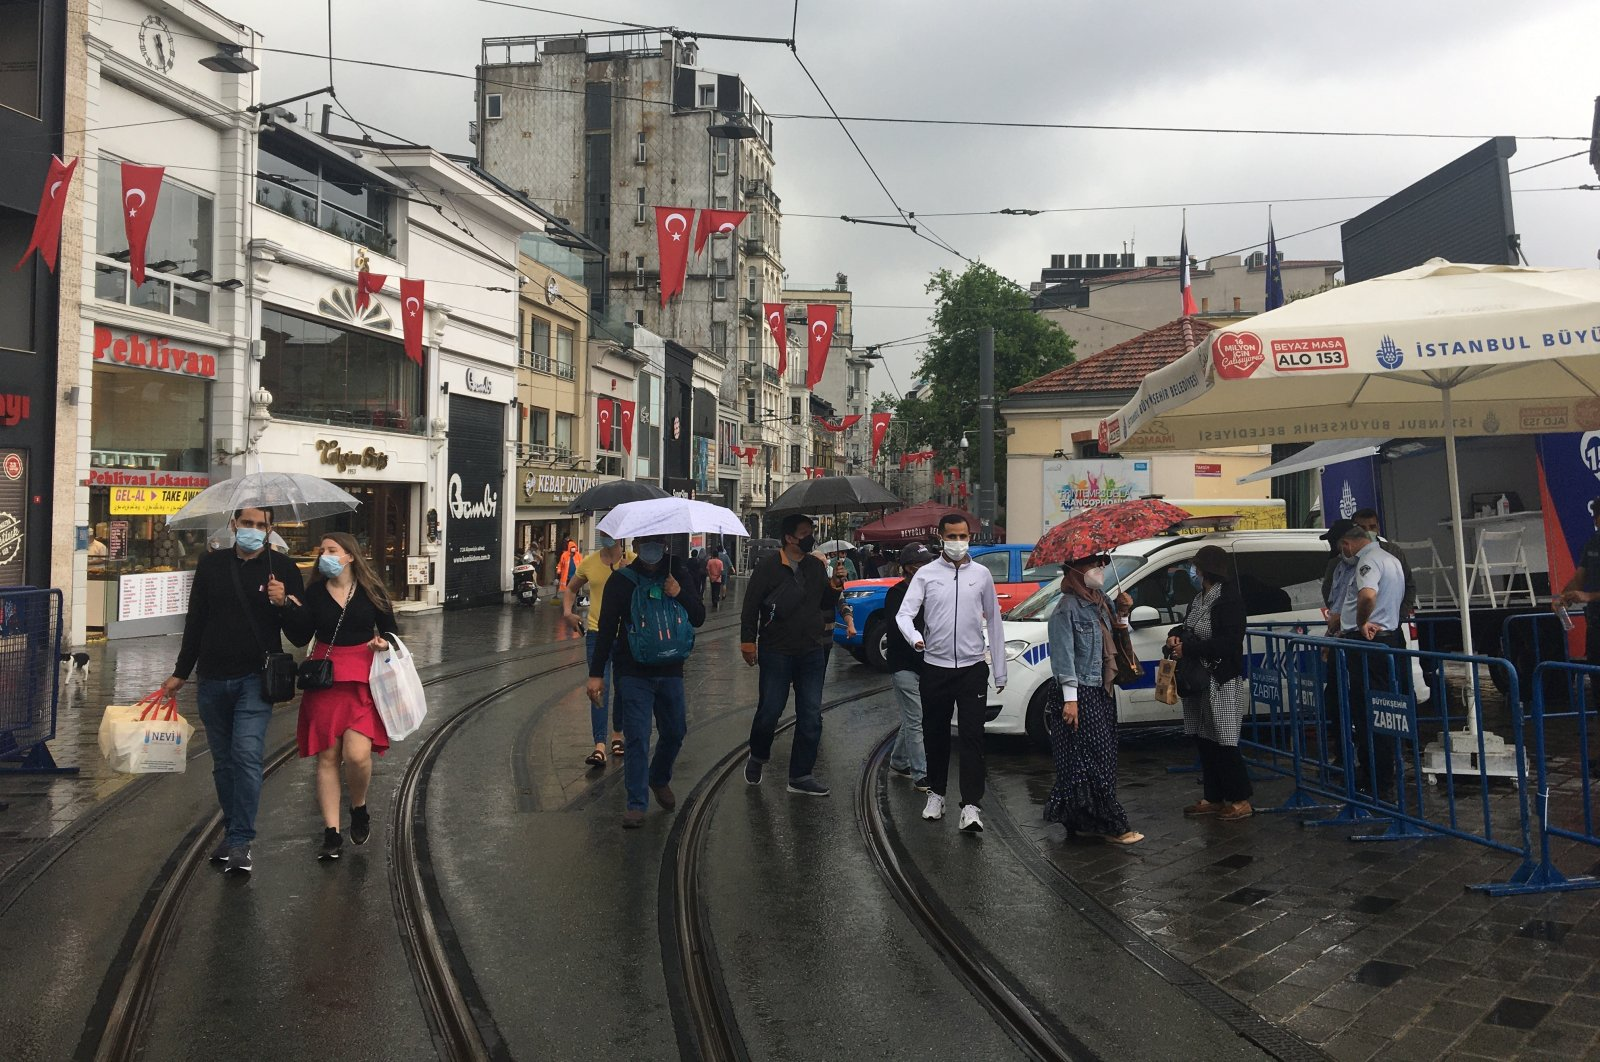 People wearing masks walk amid rainy weather at the entrance of Istiklal Avenue at the famous Taksim Square in Istanbul, Turkey, May 29, 2021. (IHA Photo)